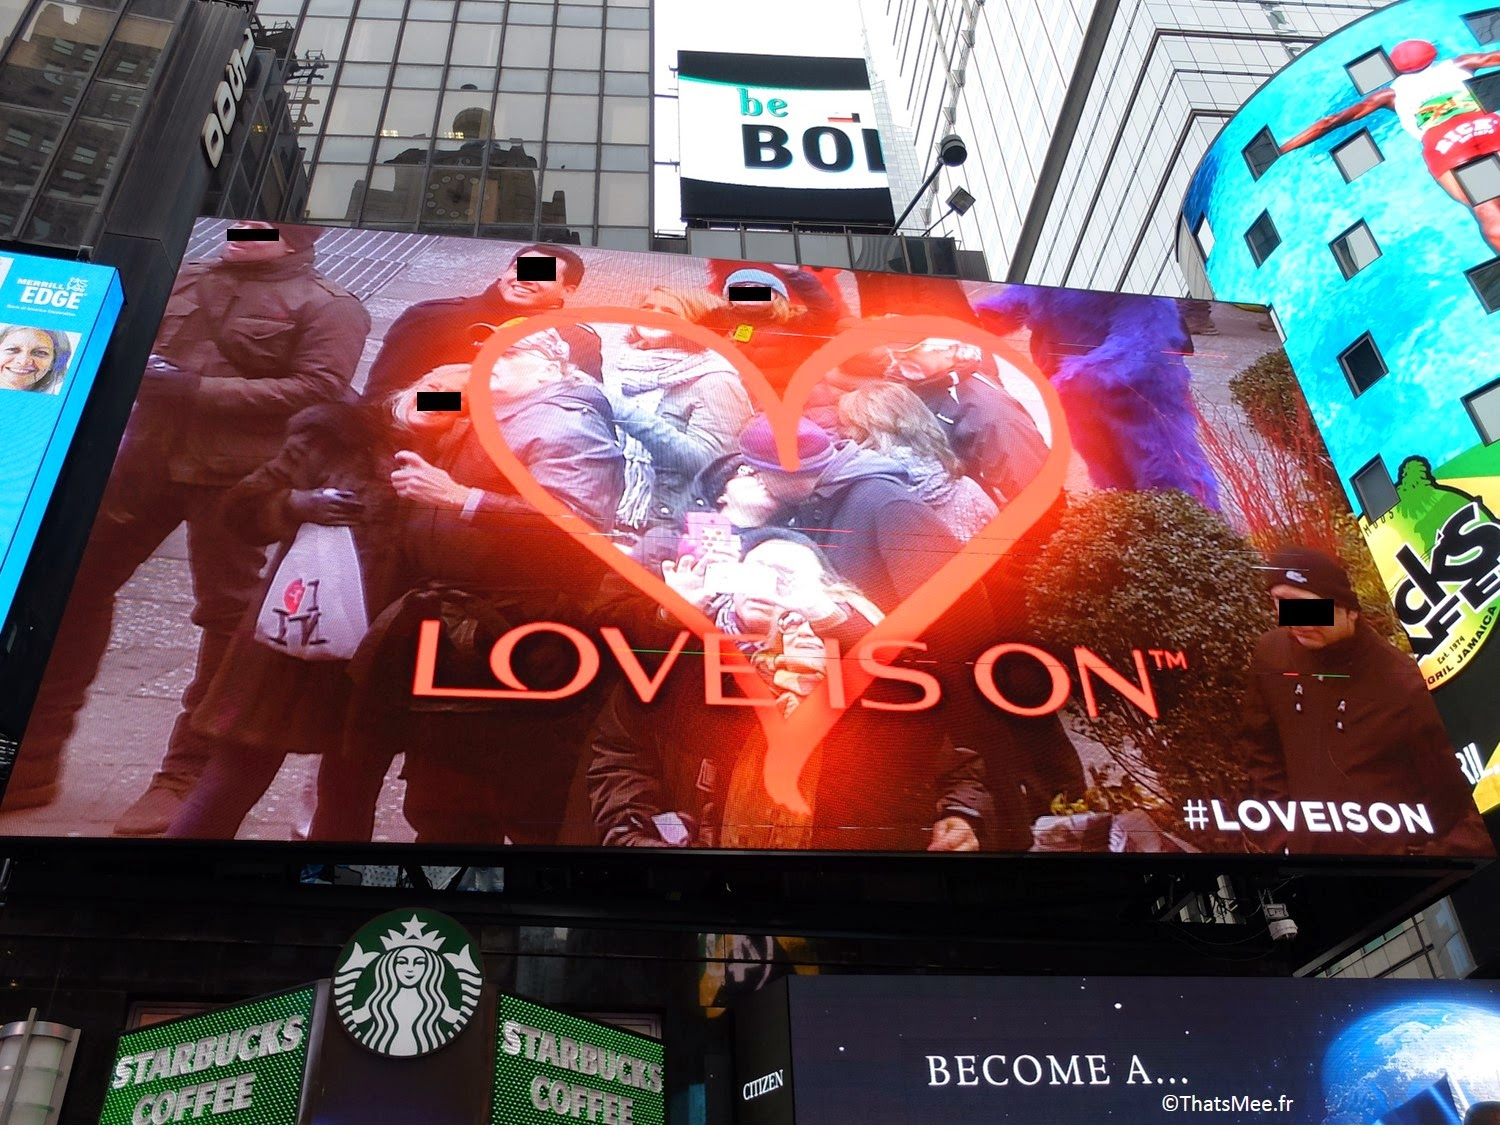 NY visiter New-York Times Square et Broadway Love is on Valentine's day Revlon 2015